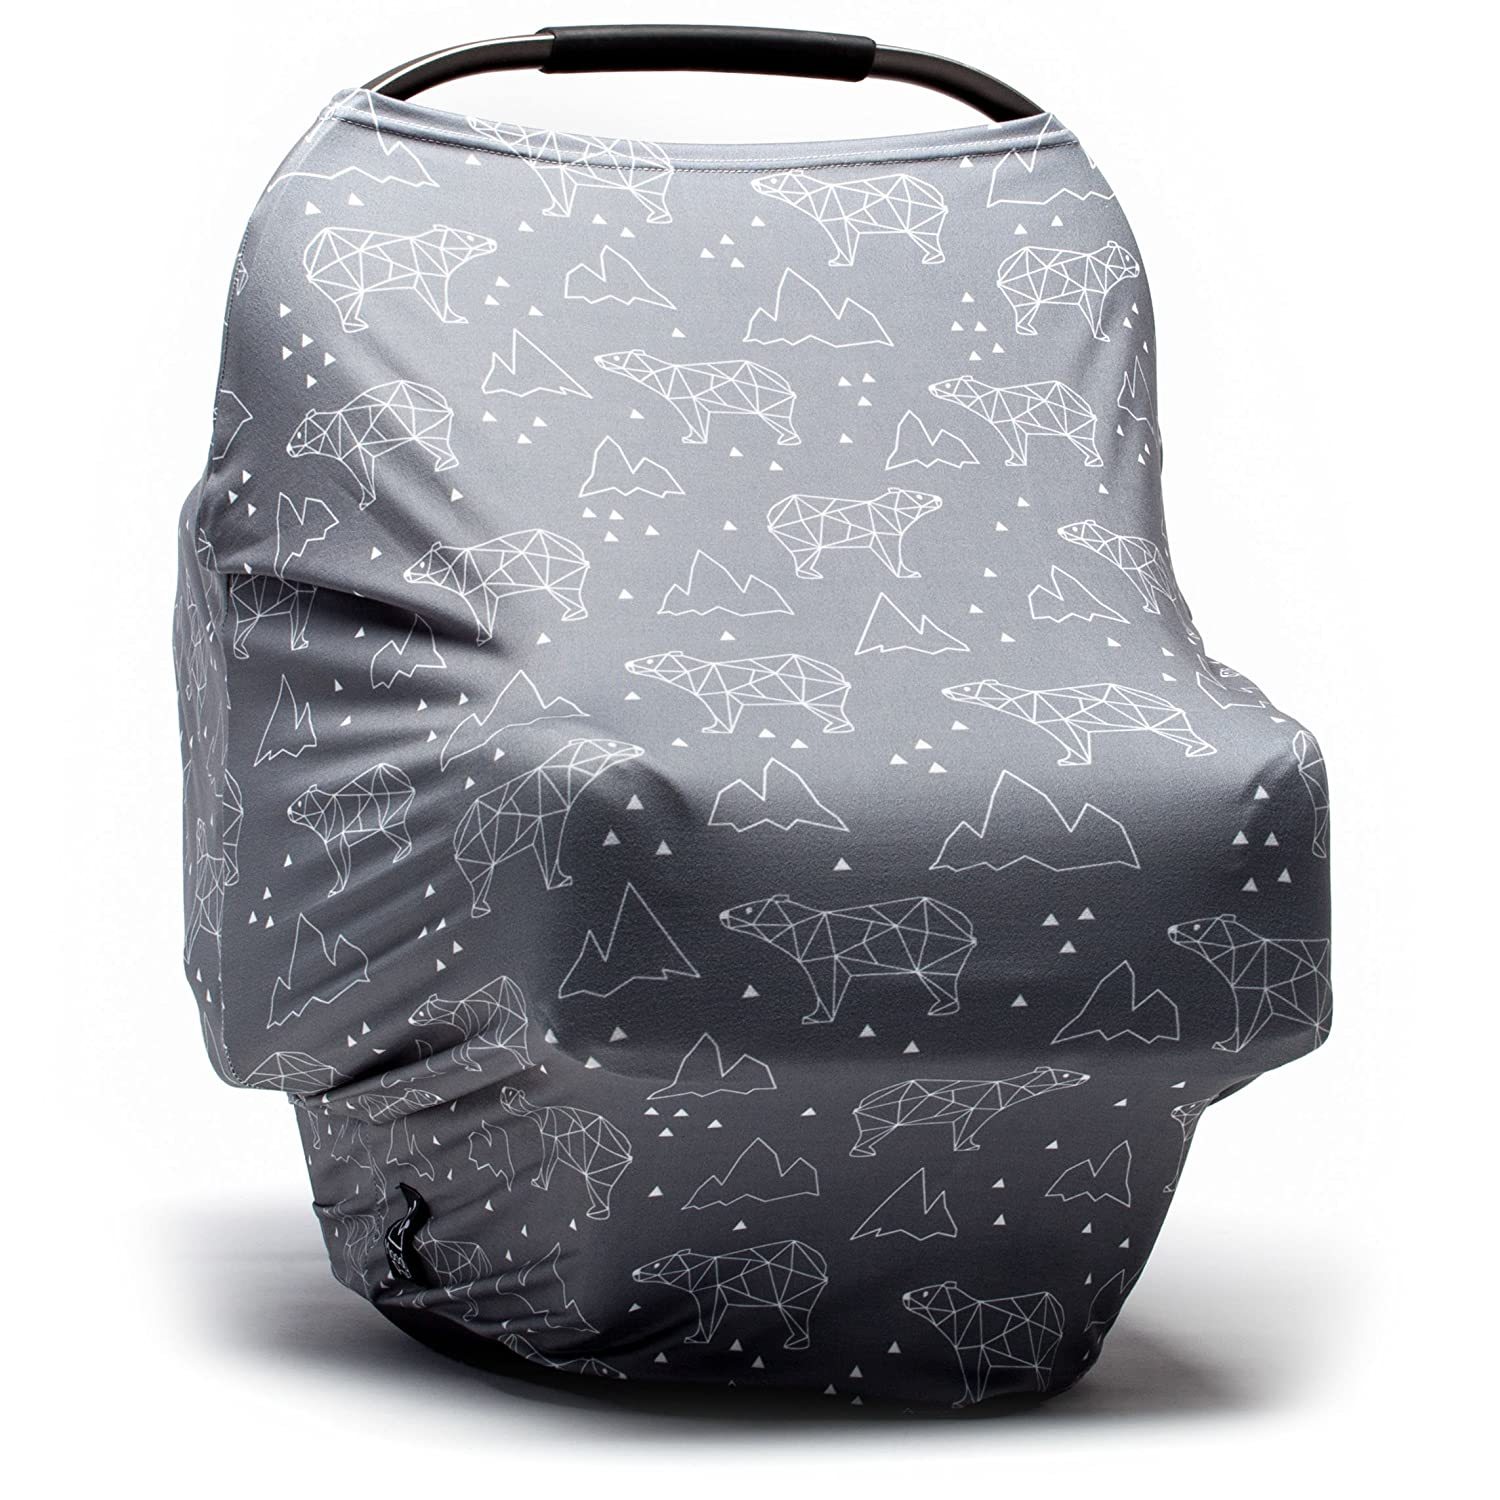 Baby Car Seat Cover - Nursing Cover - Stroller Carseat Canopy Cover for Girls and Boys - Infant Car Seat Cover for Babies - Infinity Stretchy Breastfeeding Cover(Arctic Bears) Moody Park